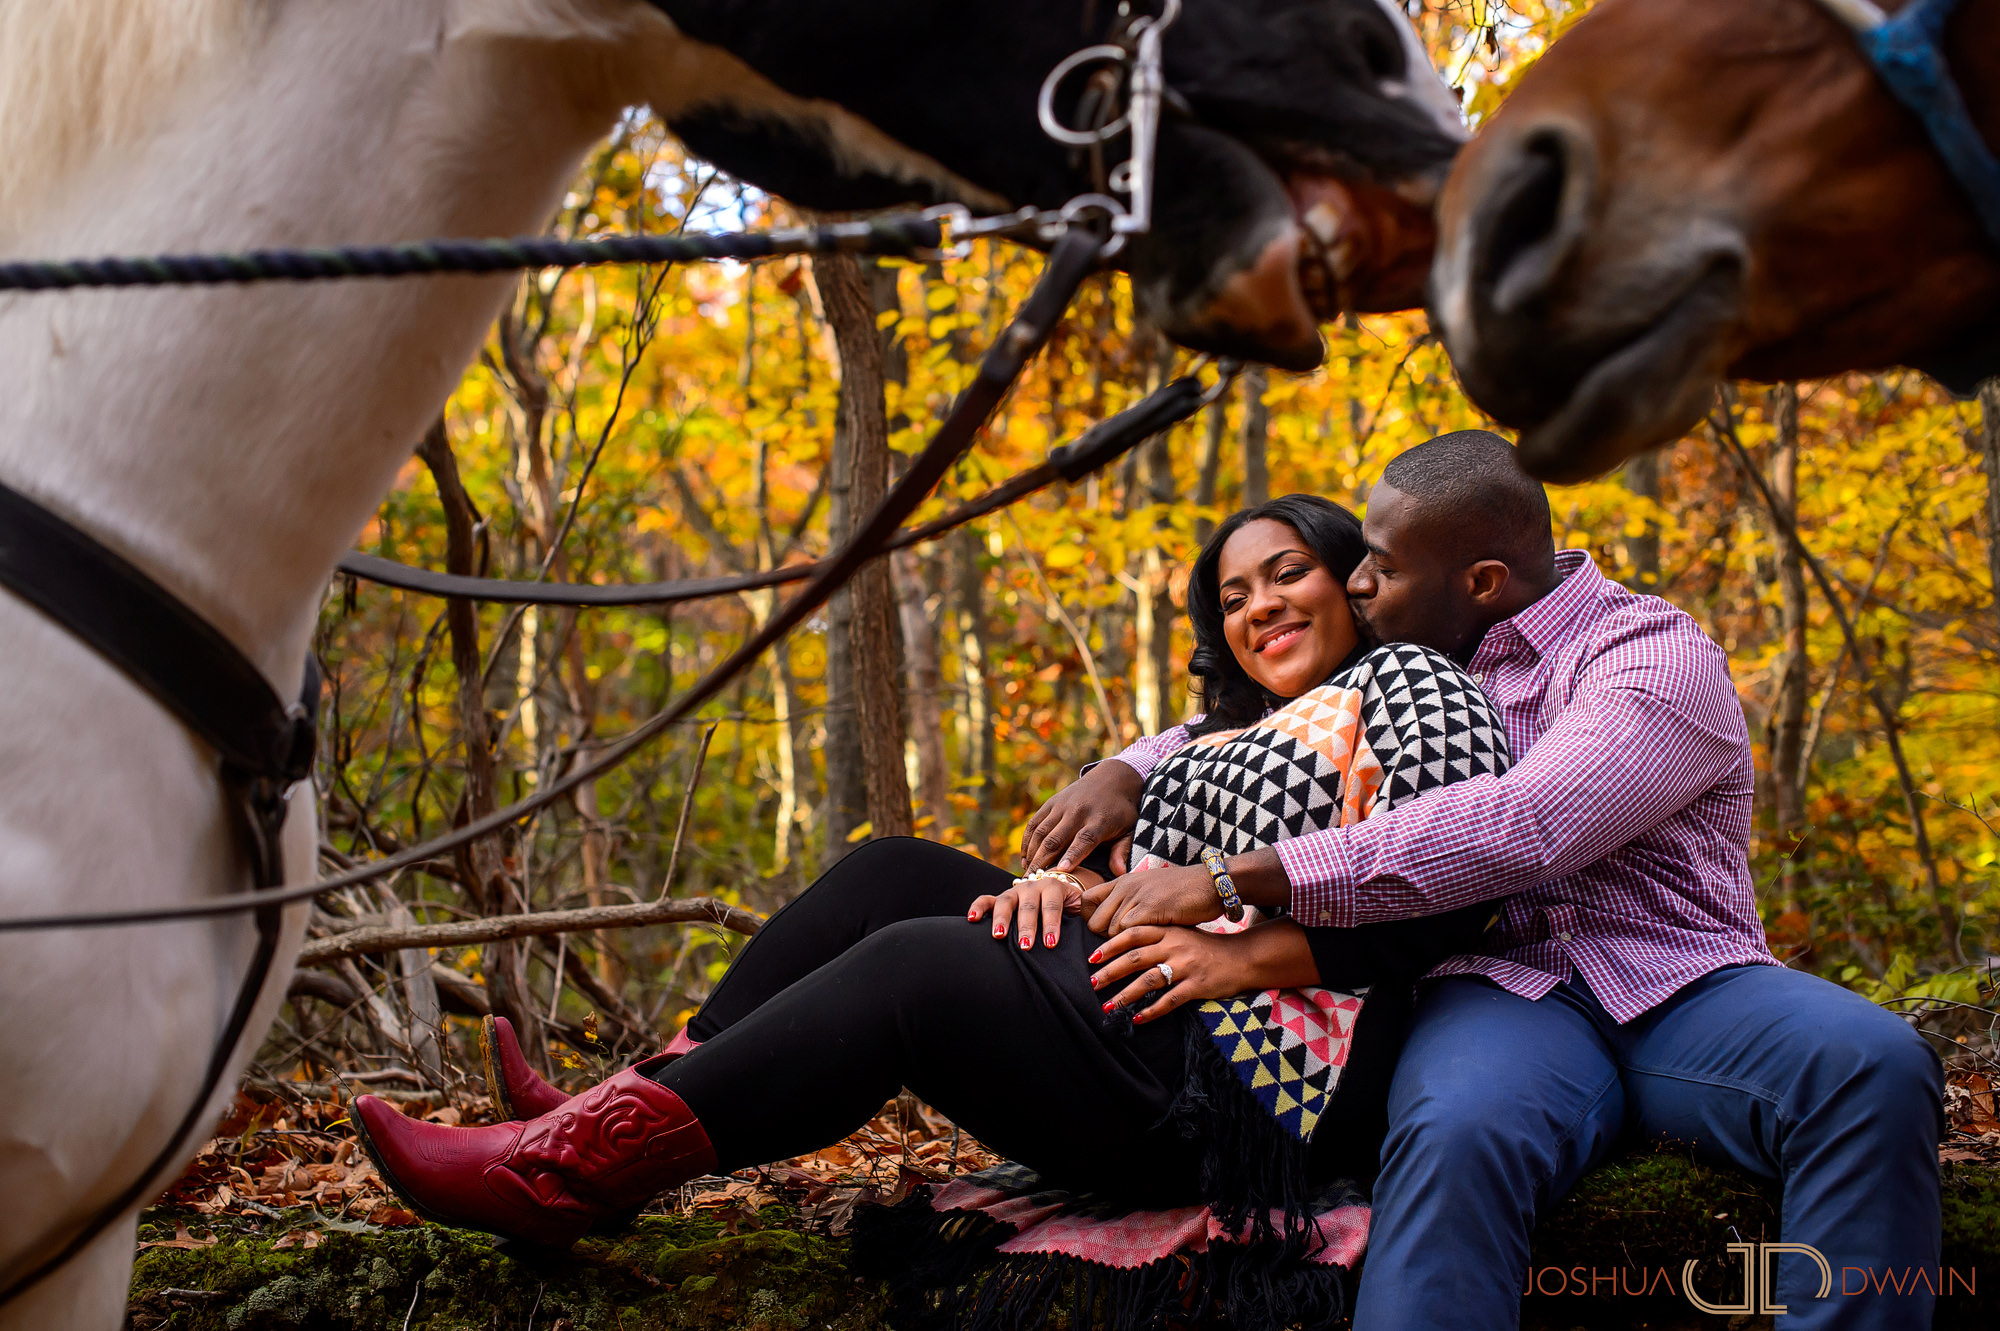 ashley-william-006-Sweet-Hills-Riding-Center -Long-Island-NY-engagement-wedding-photographer-joshua-dwain